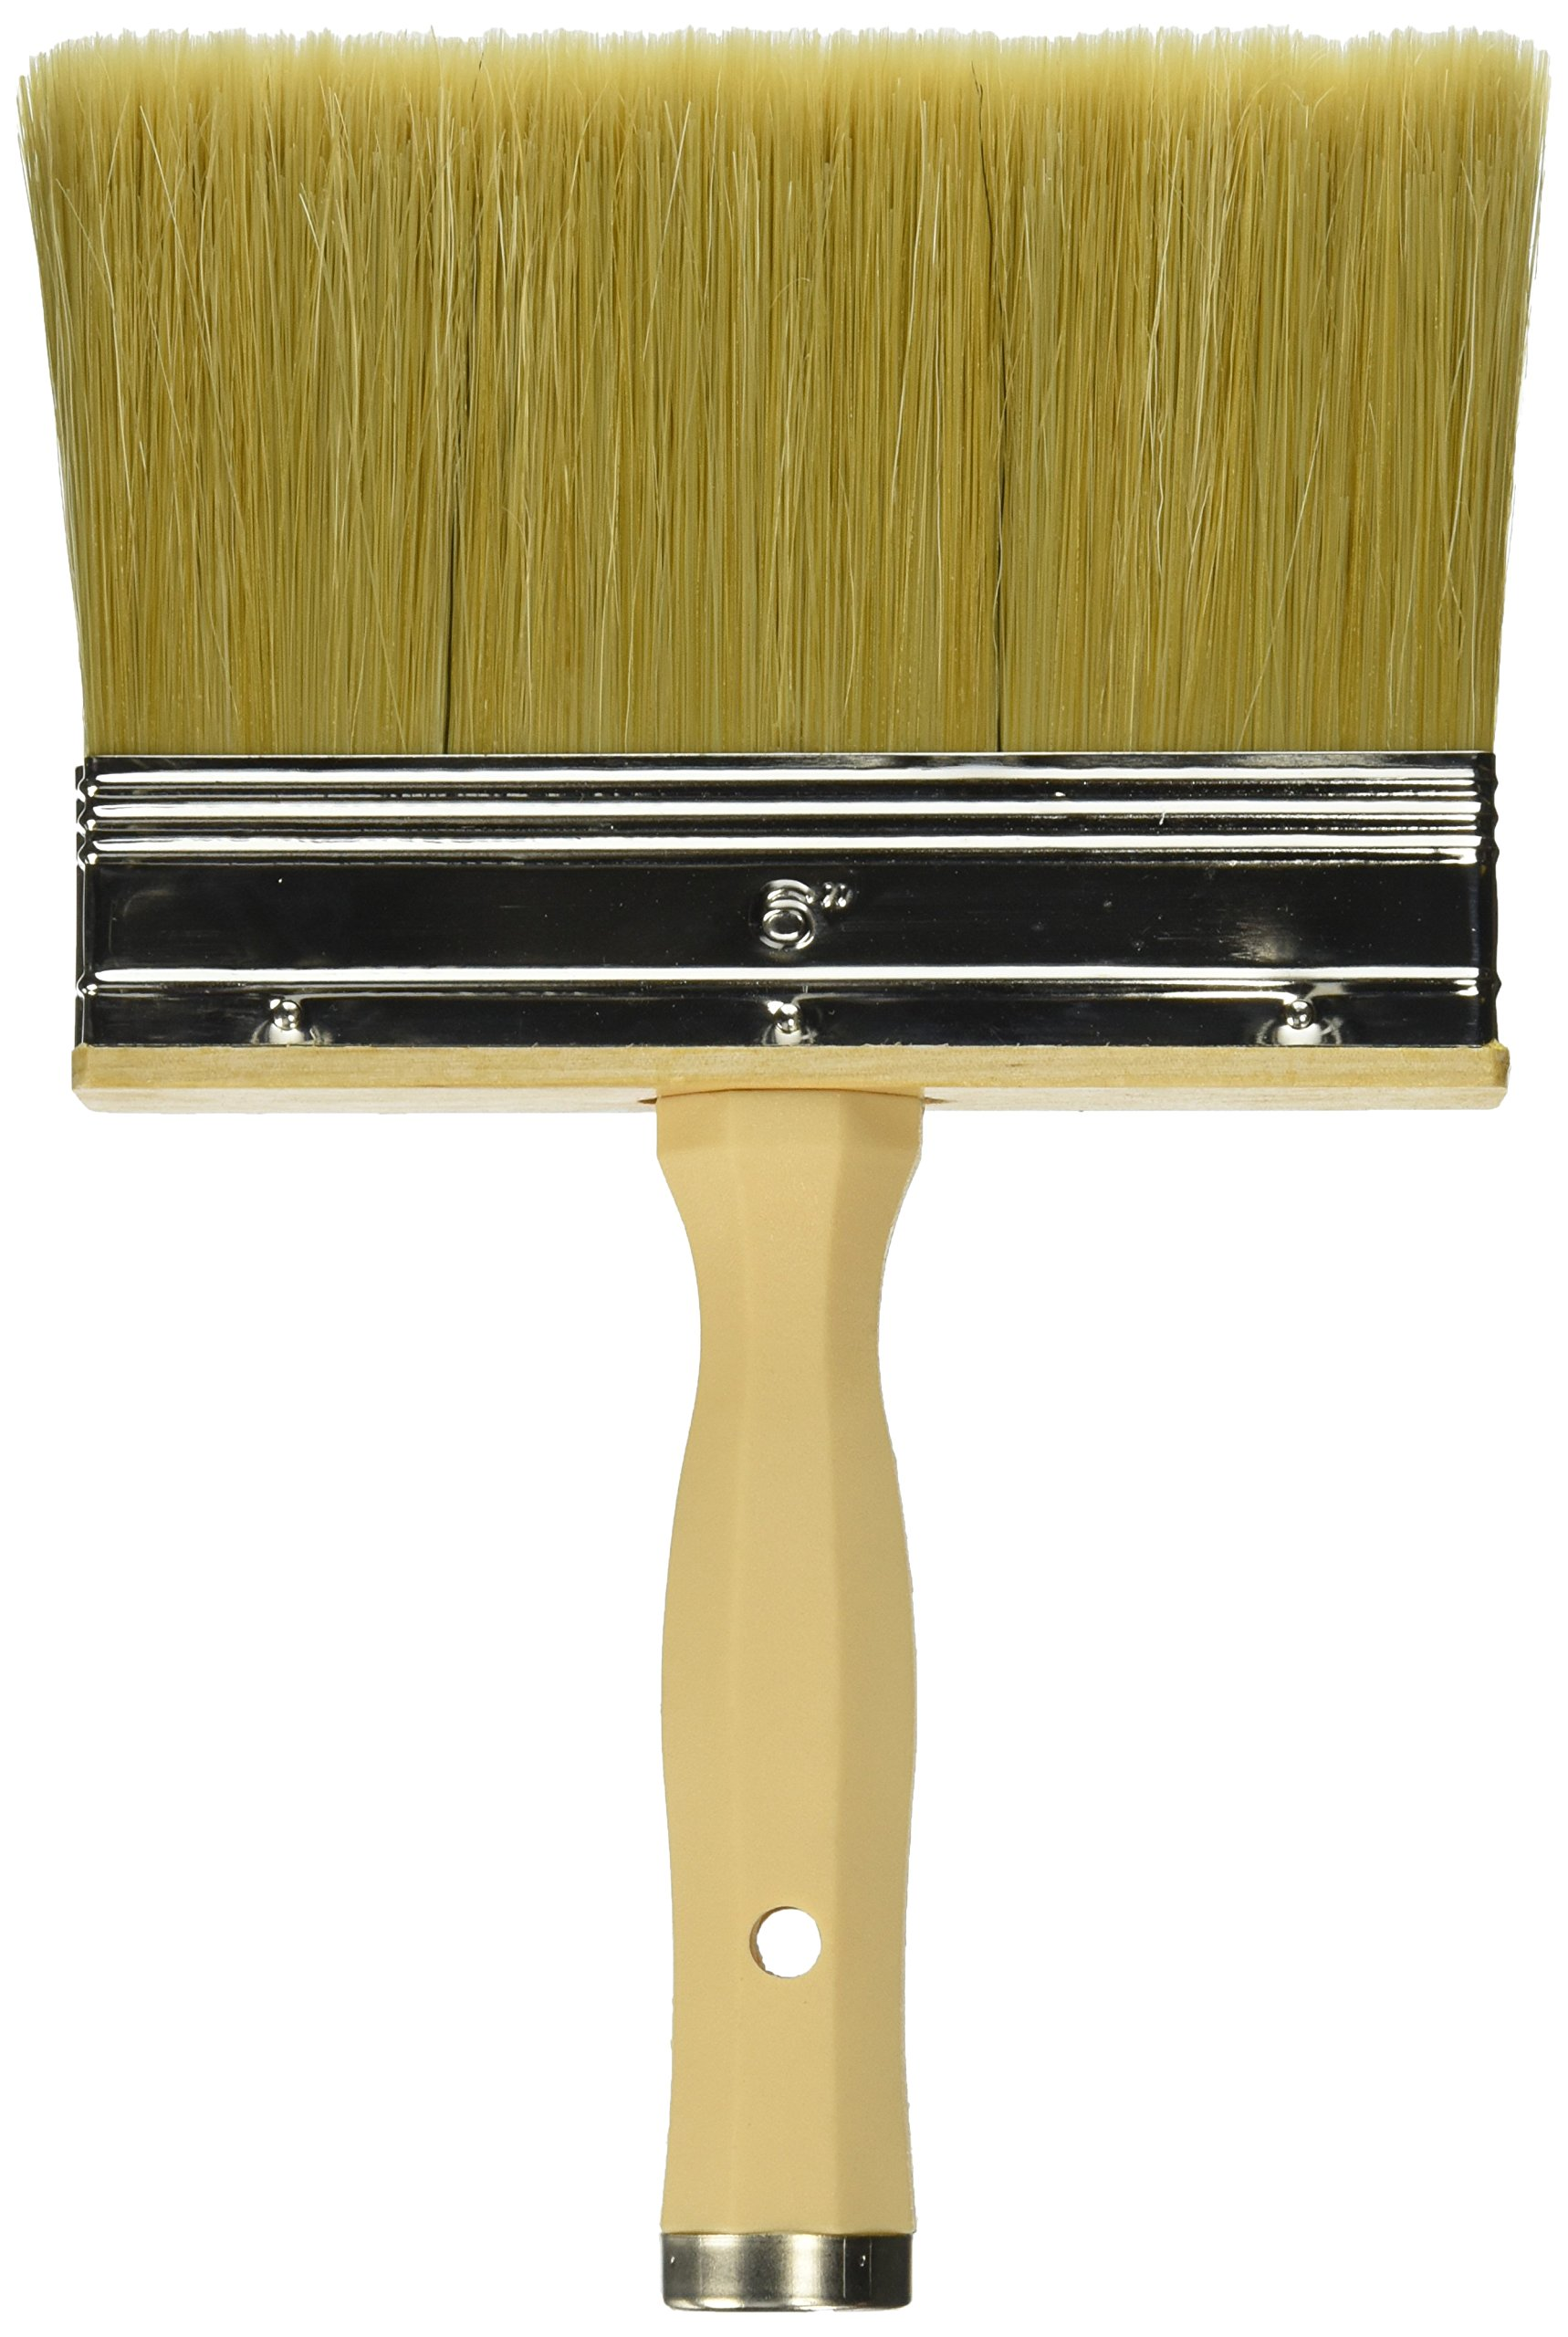 Linzer 3550 0600 Professional Quality Polyester & Bristle Stain Brush, For Staining and Waterproofing, 6-Inches.